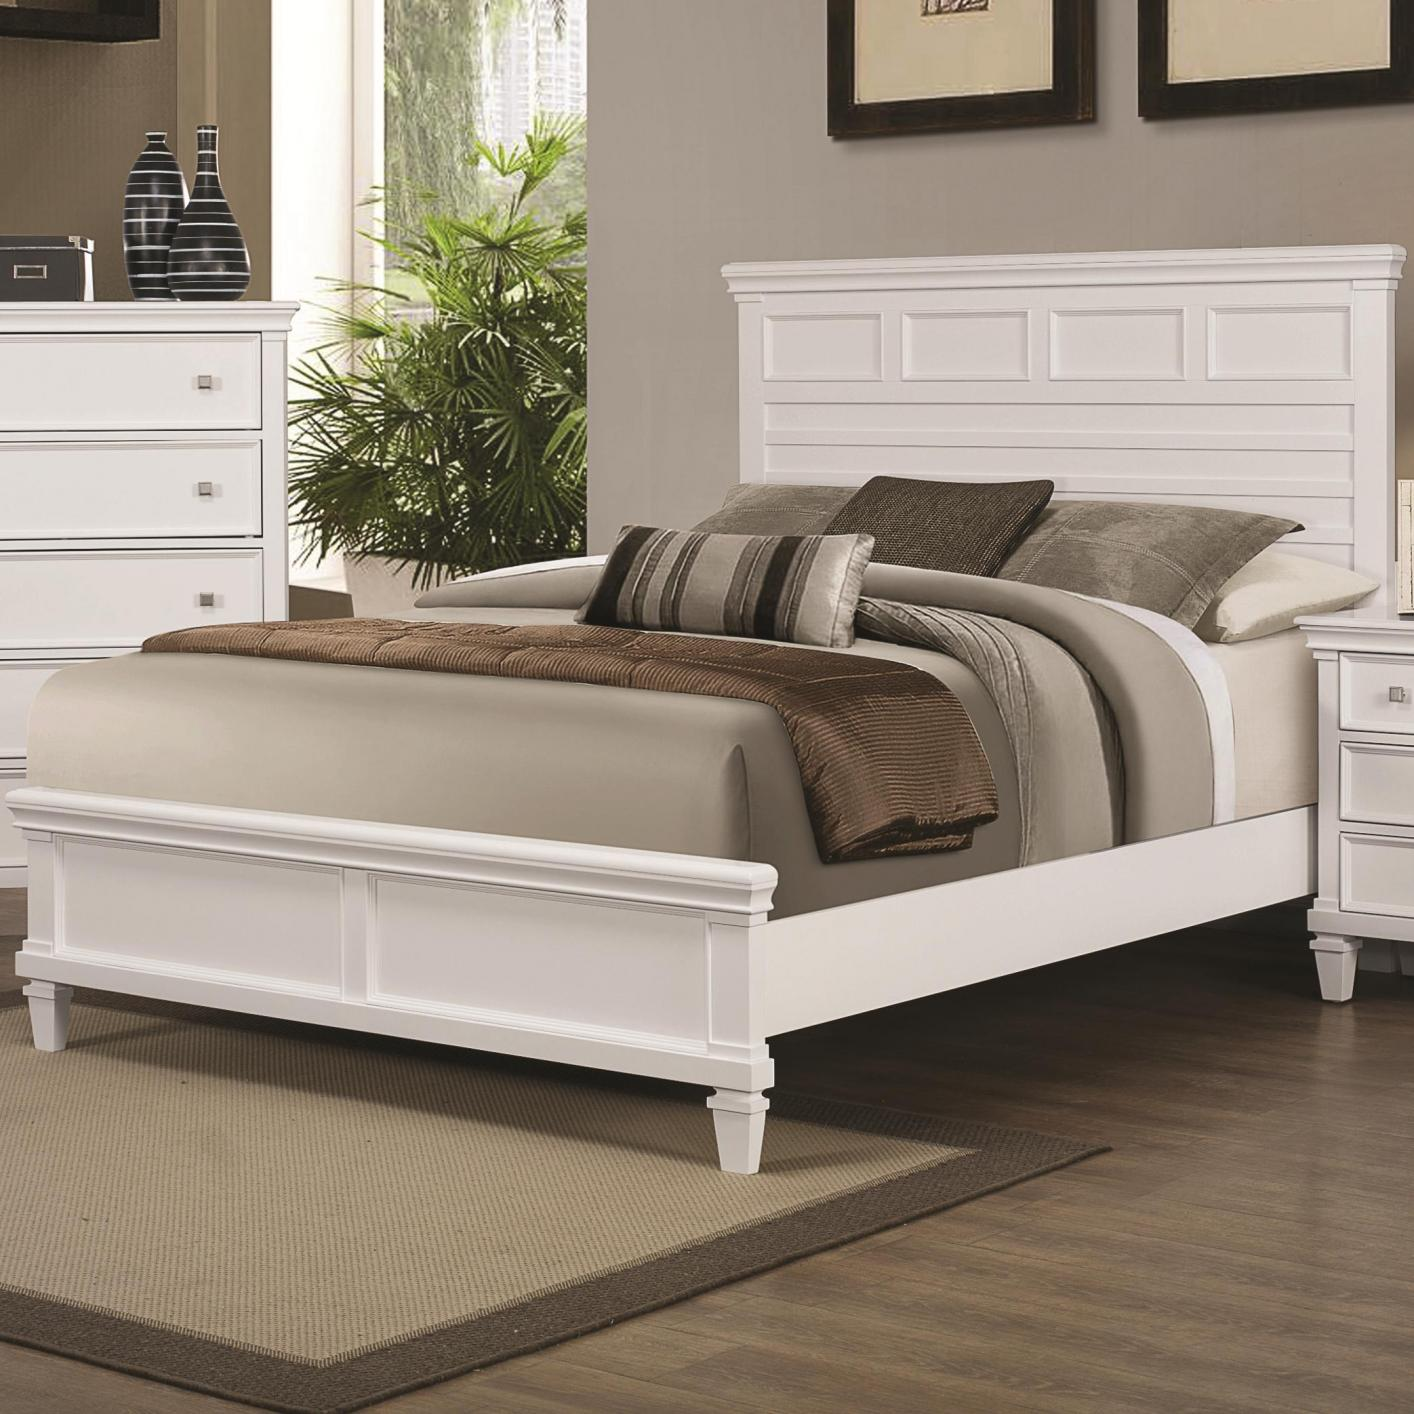 Coaster 200221KW White Wood California King Size Bed Steal A